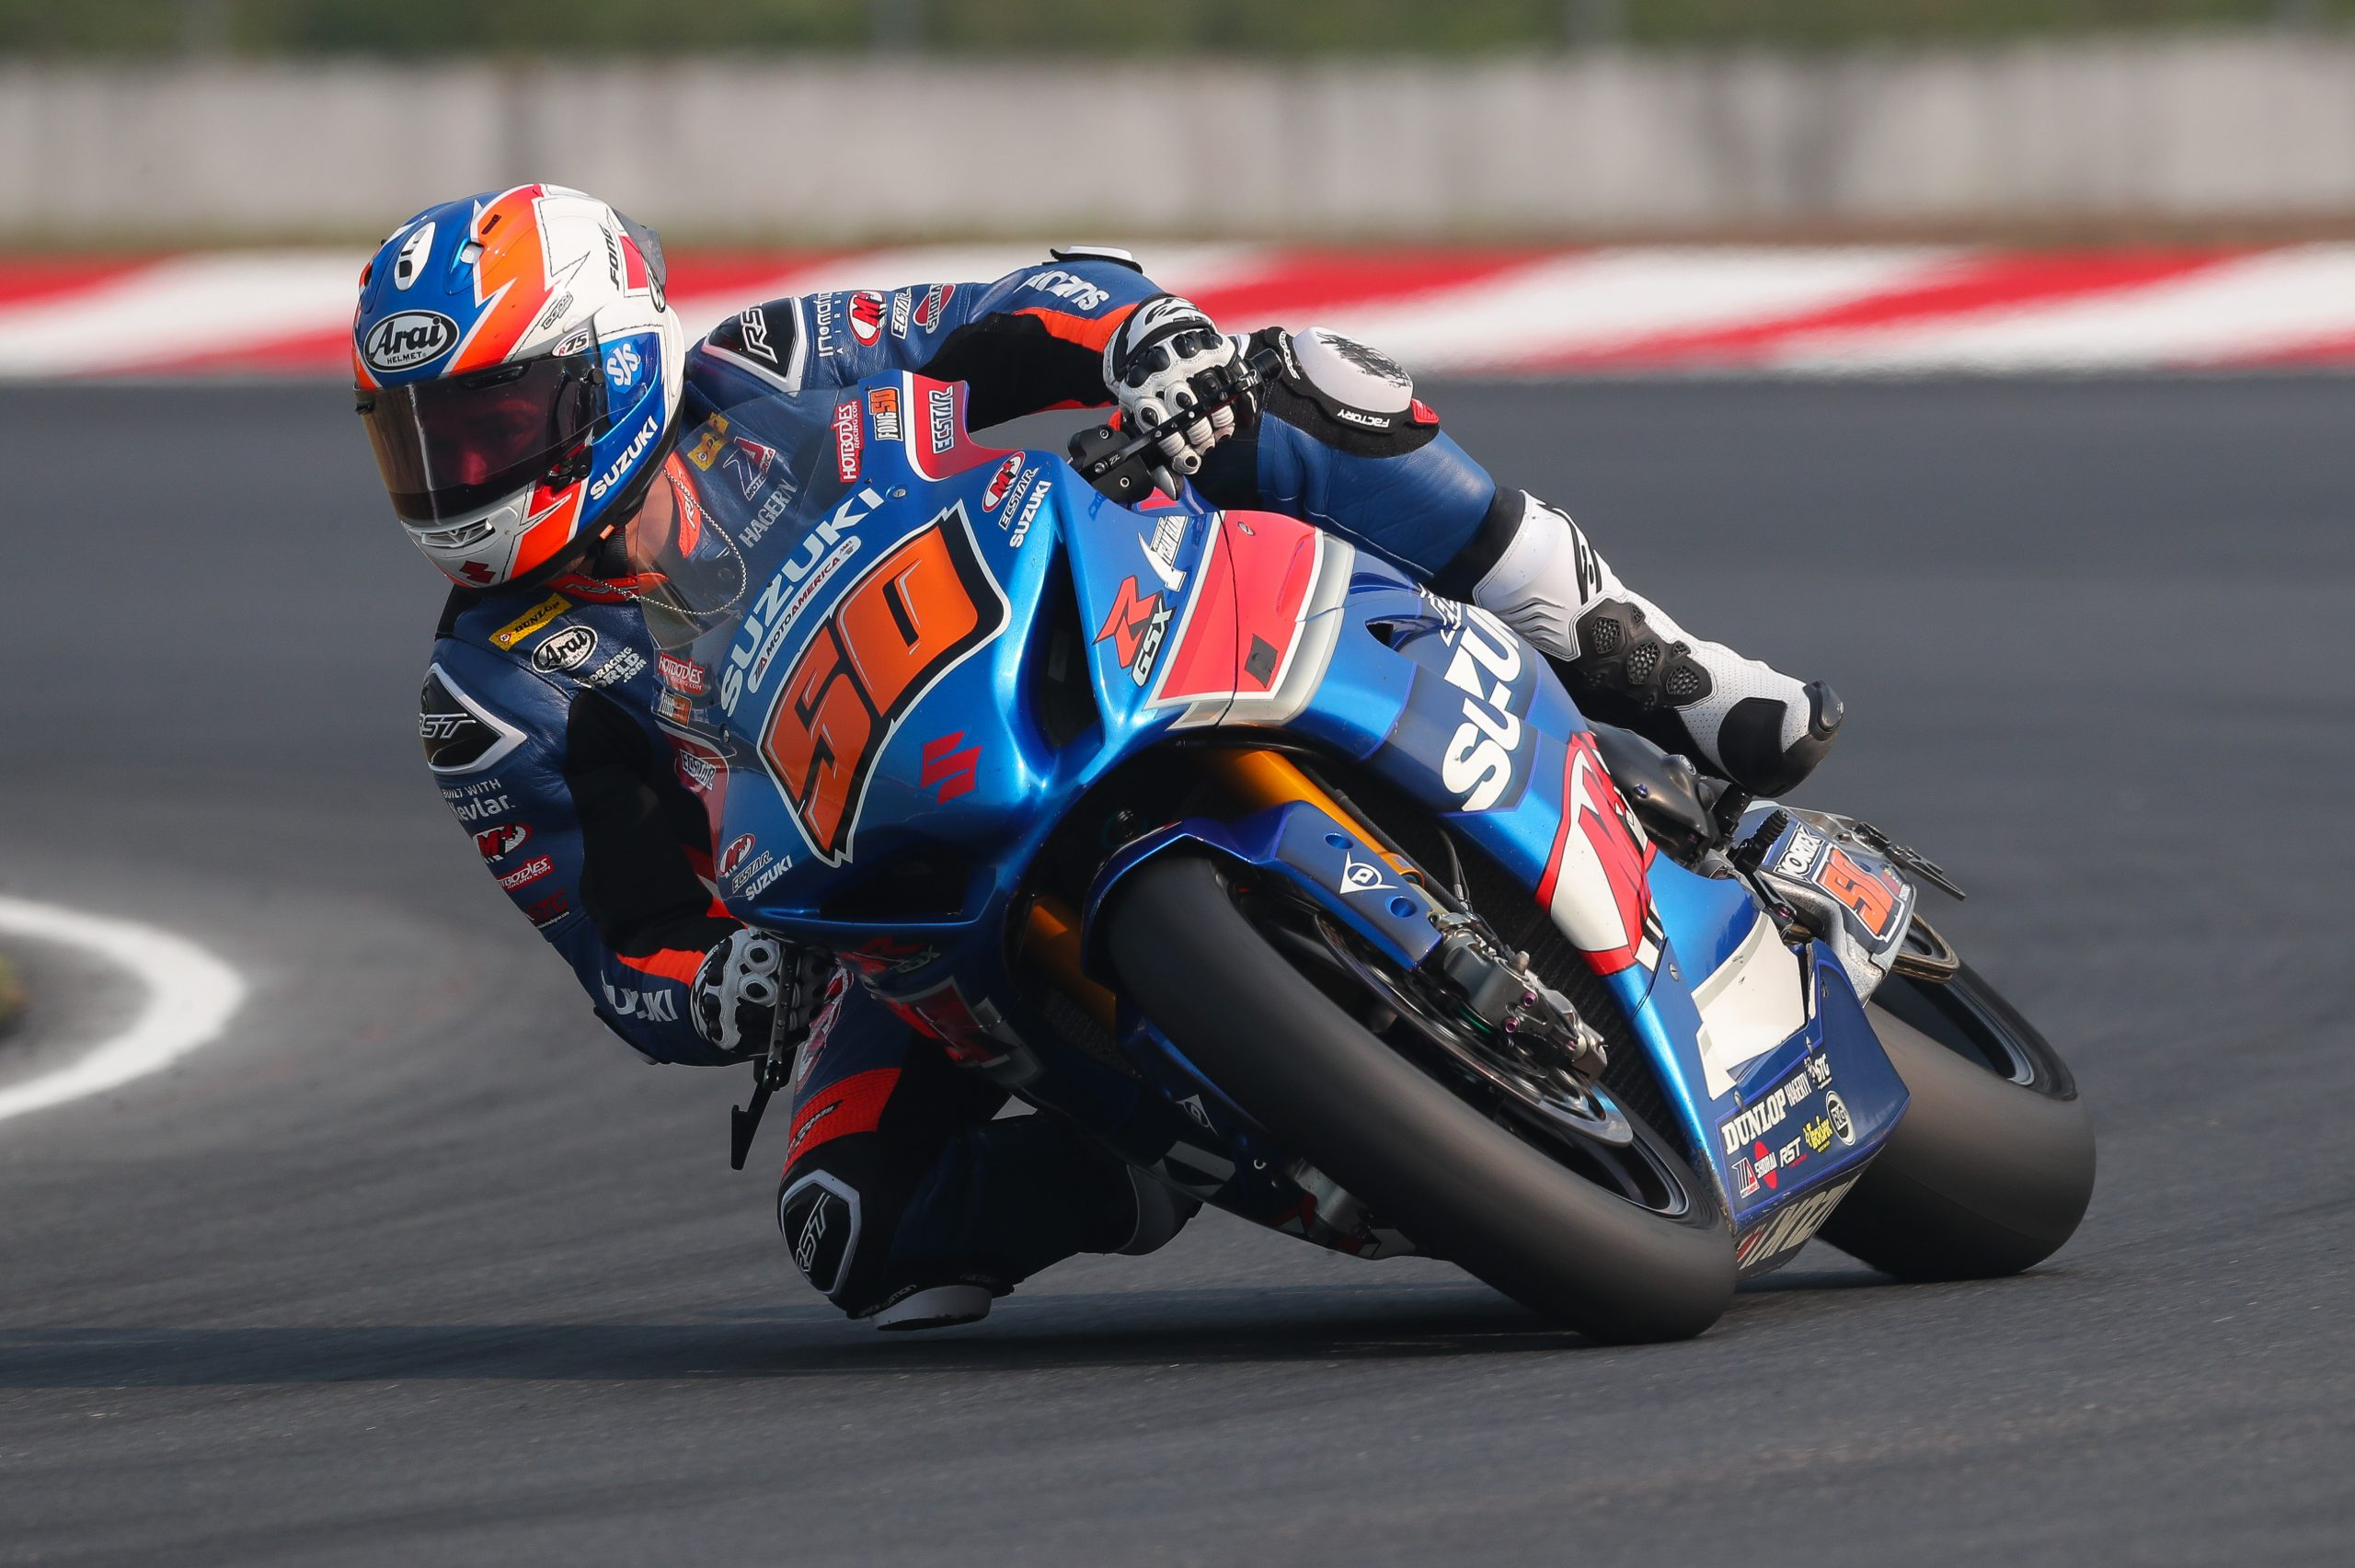 210802 Bobby Fong (50) looked strong with a solid second place finish on his Suzuki GSX-R1000R on Saturday